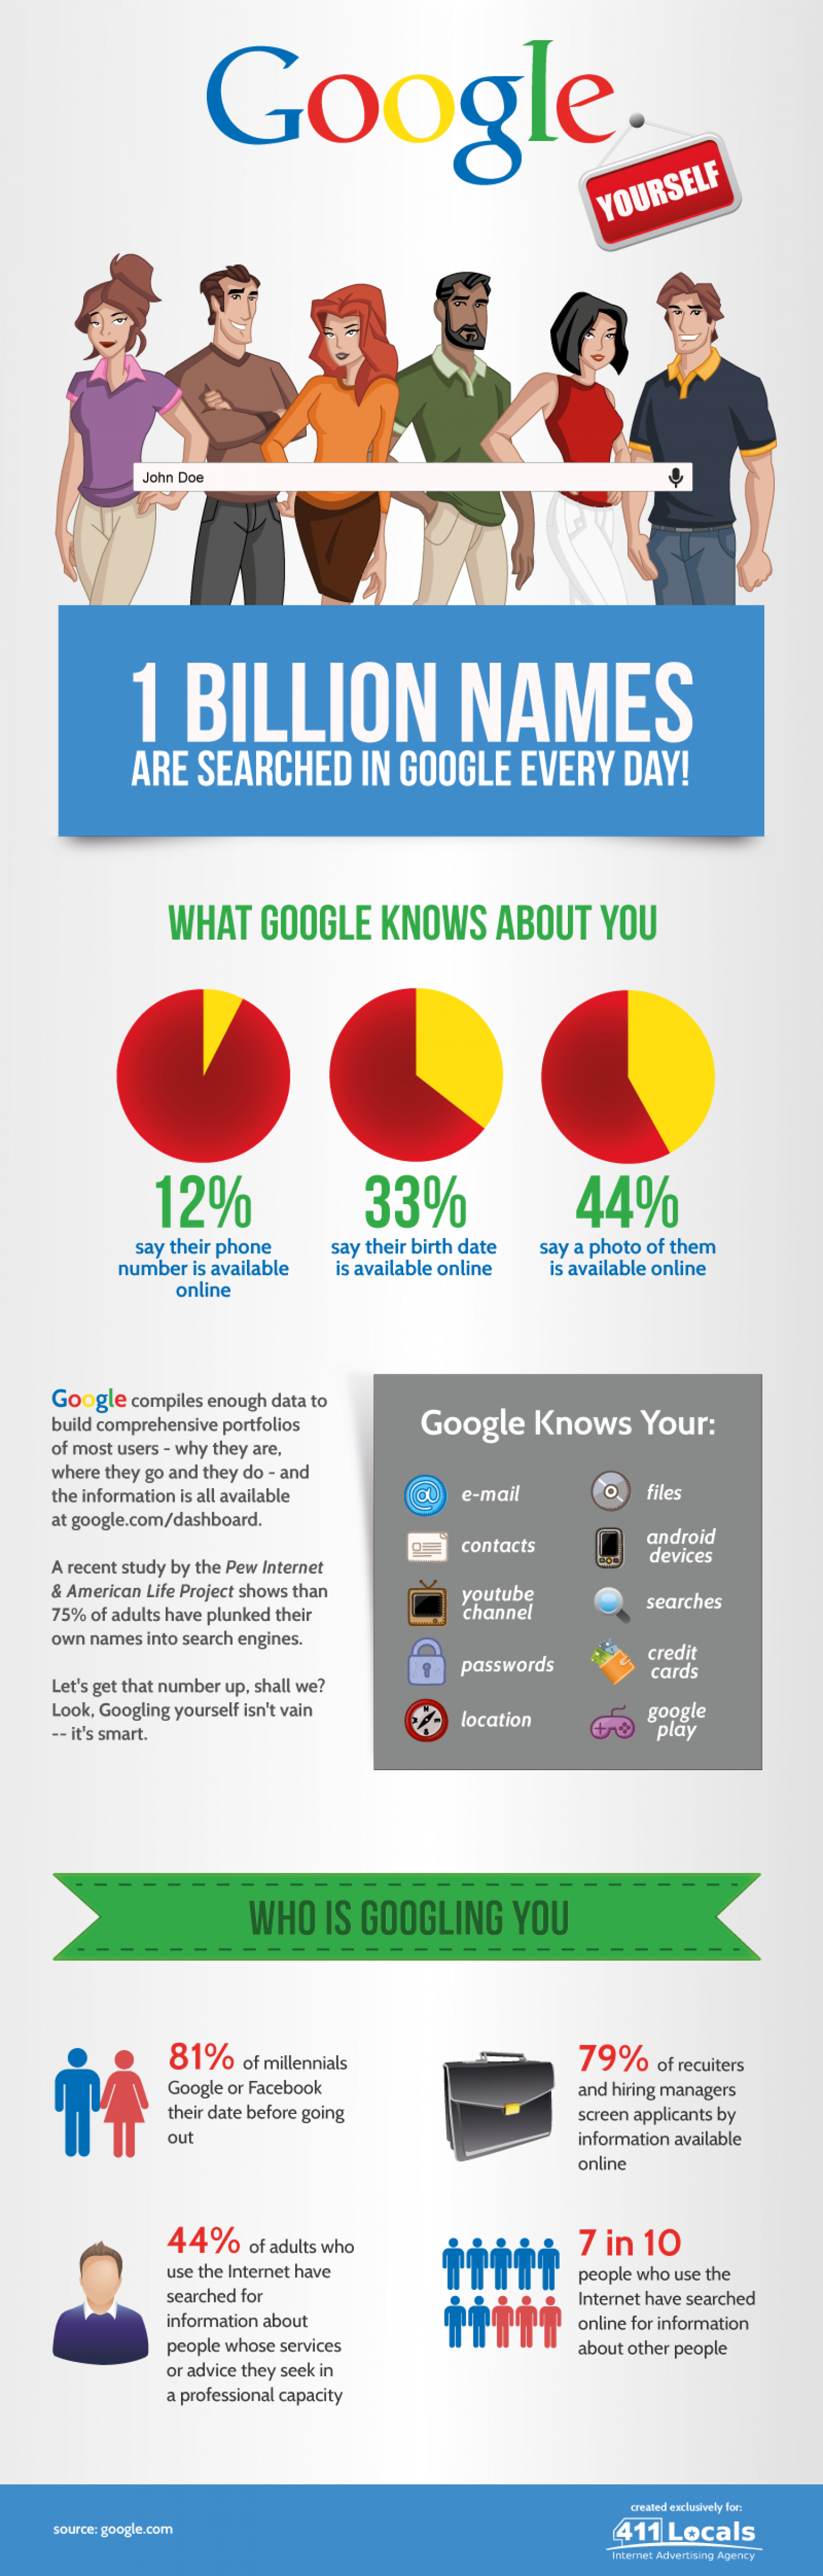 Google Yourself Infographic